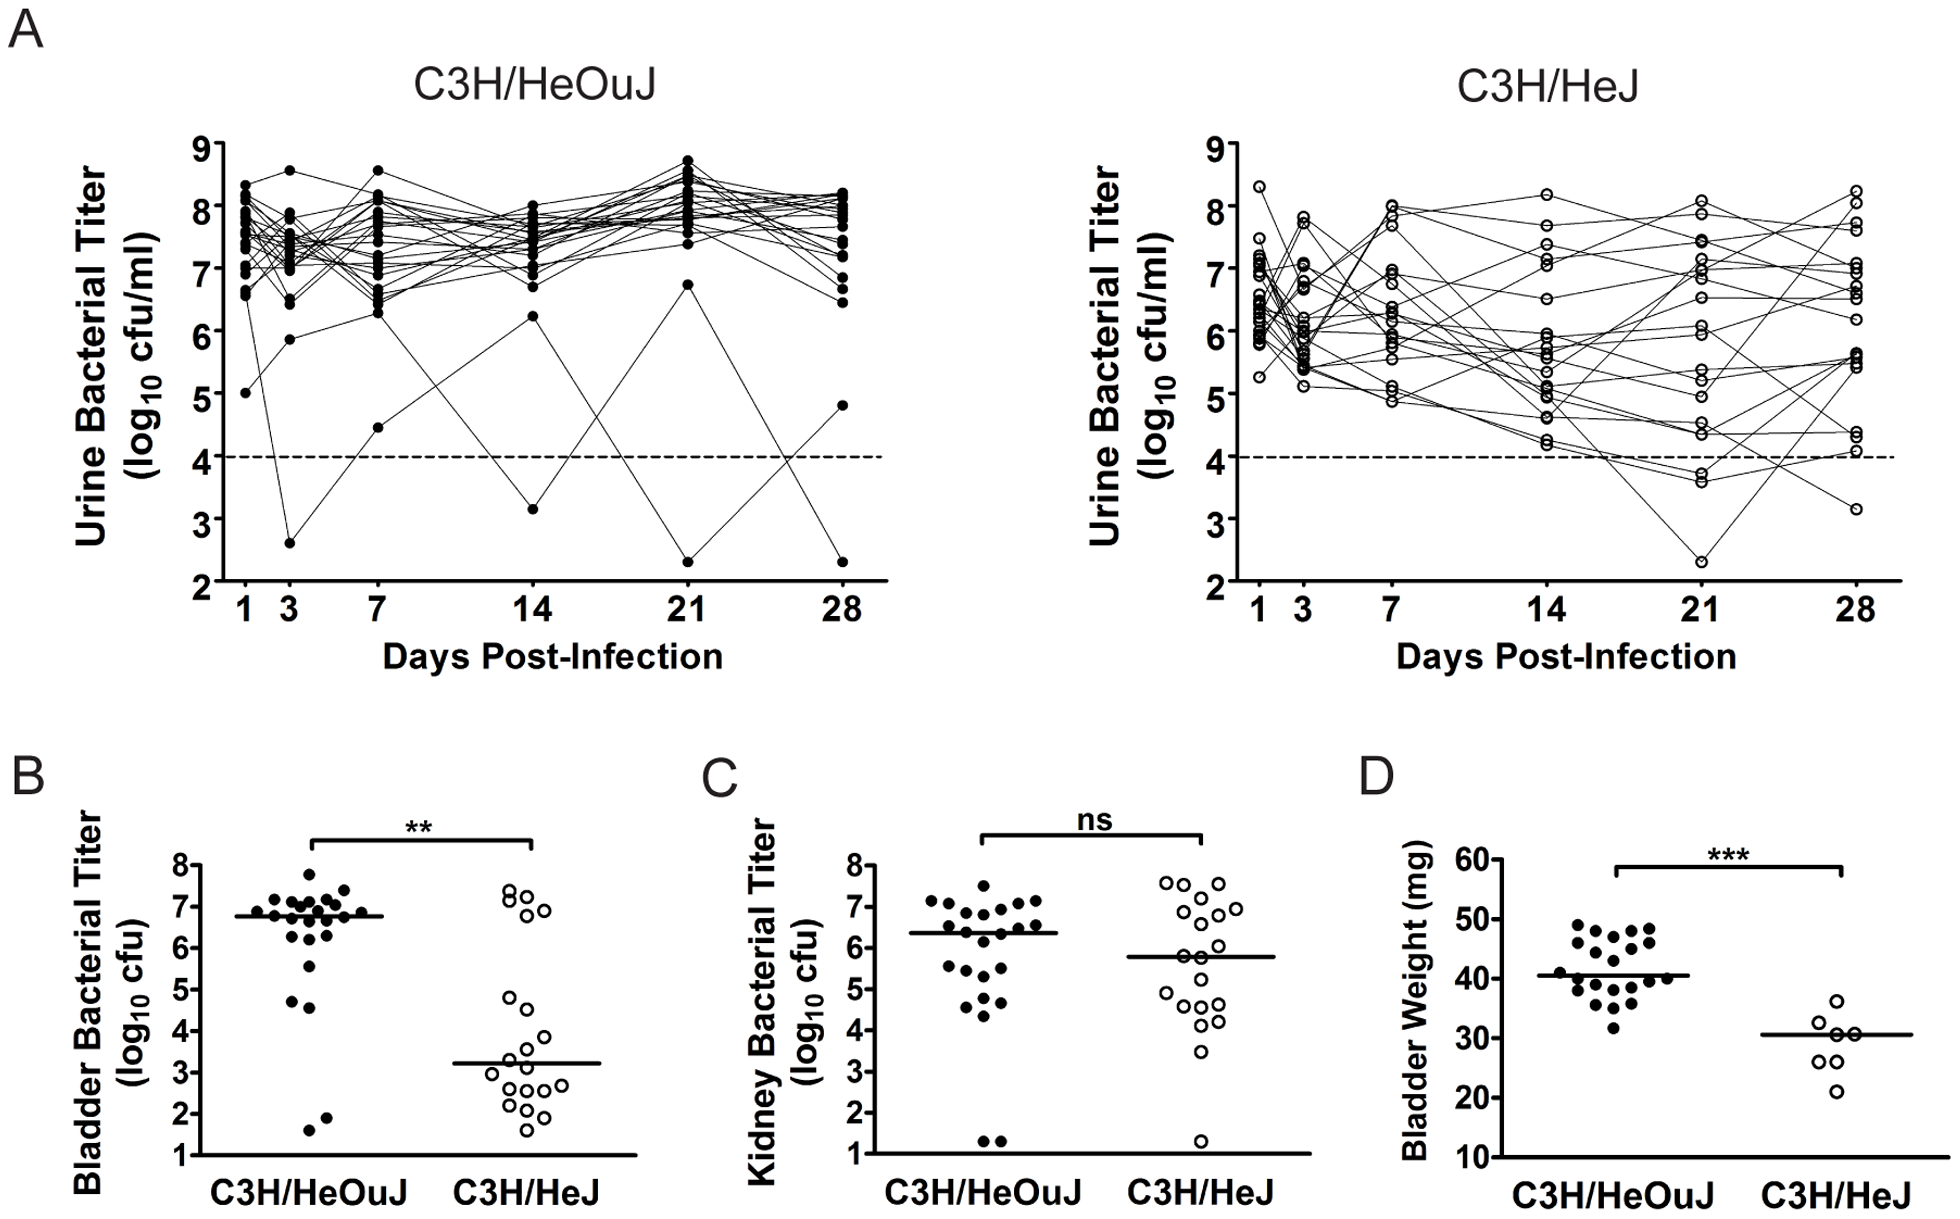 The outcome of UPEC infection of the urinary bladder differs between C3H/HeOuJ and C3H/HeJ mice.